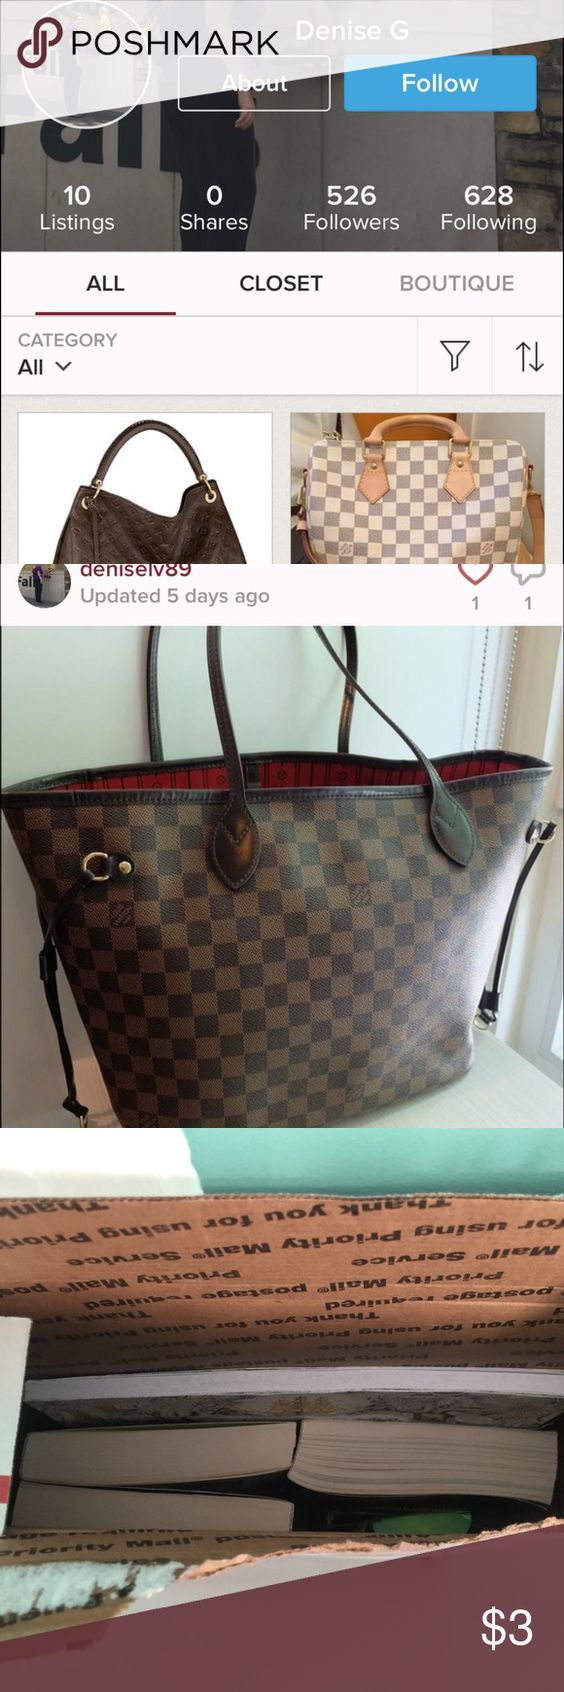 BUYERS SELLERS BEWARE of TRADES with Deniselv89 I traded an Apple Watch with this person for a Neverful LV bag. I already was suspect about it from the beginning because LV is worth so much more. I sent my item a day after she sent hers and this is what I received a bunch of books. I am currently doing a package intercept with usps so I can have my package back. I WARN YOU NOT TO TRADE WITH HER. Several others are effected as well. BE SMART Other